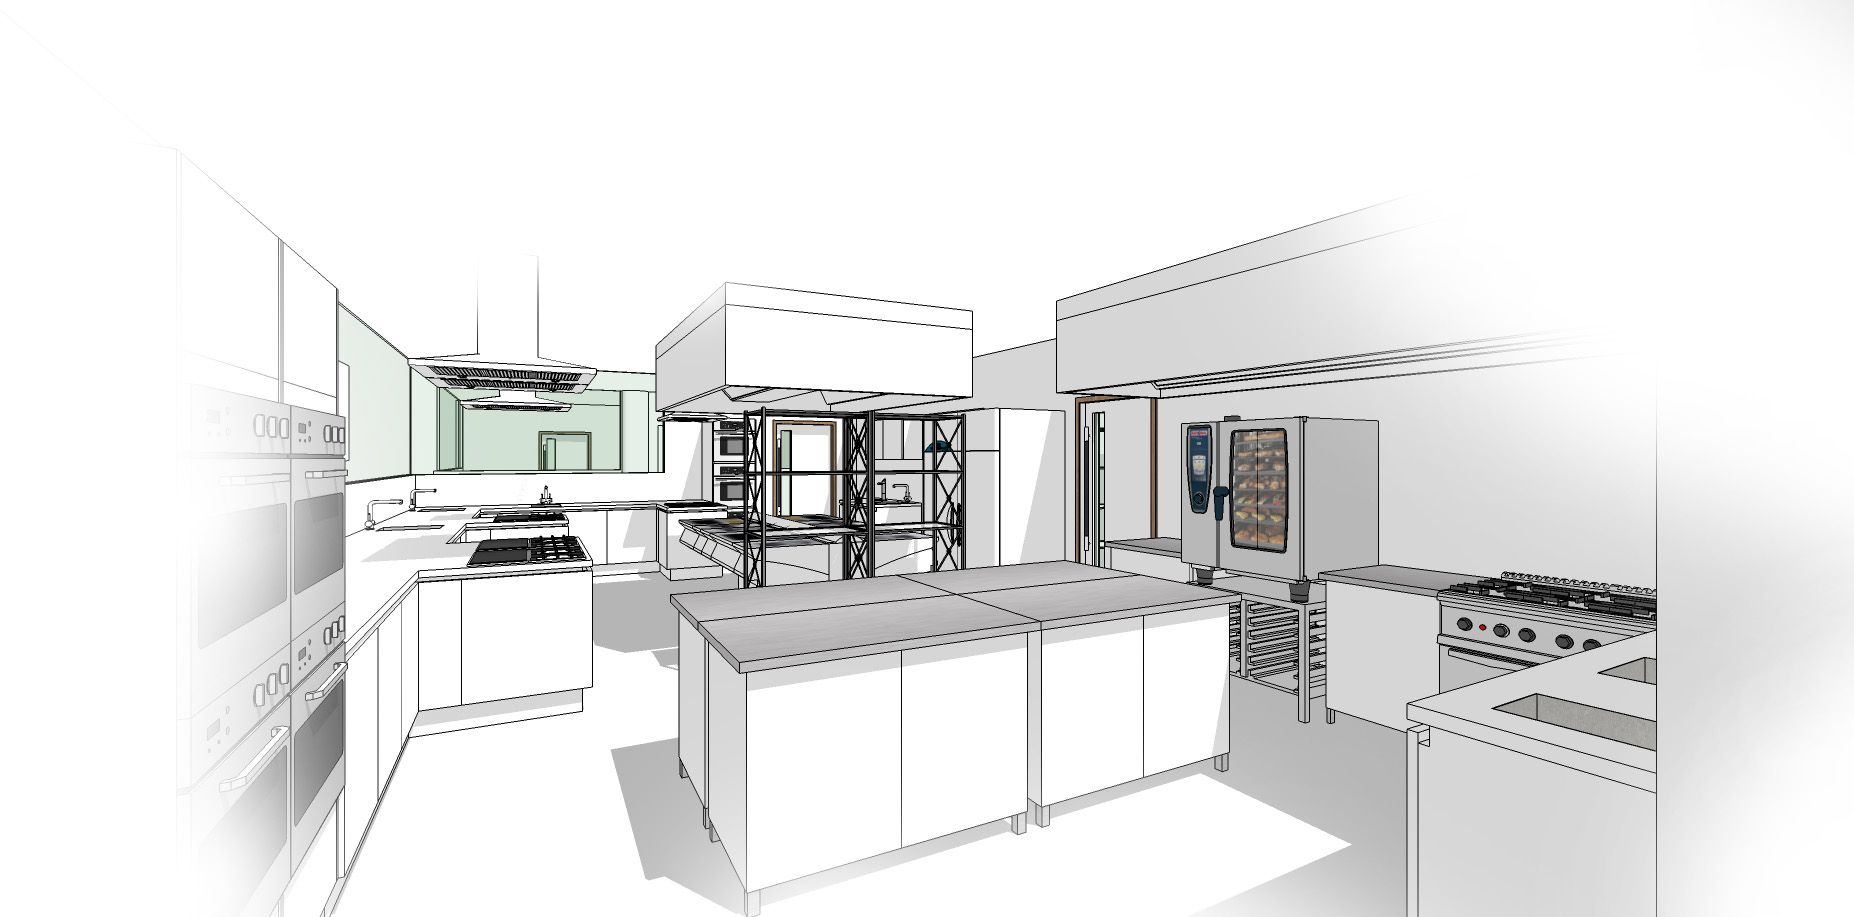 Commercial Kitchen Sketchup